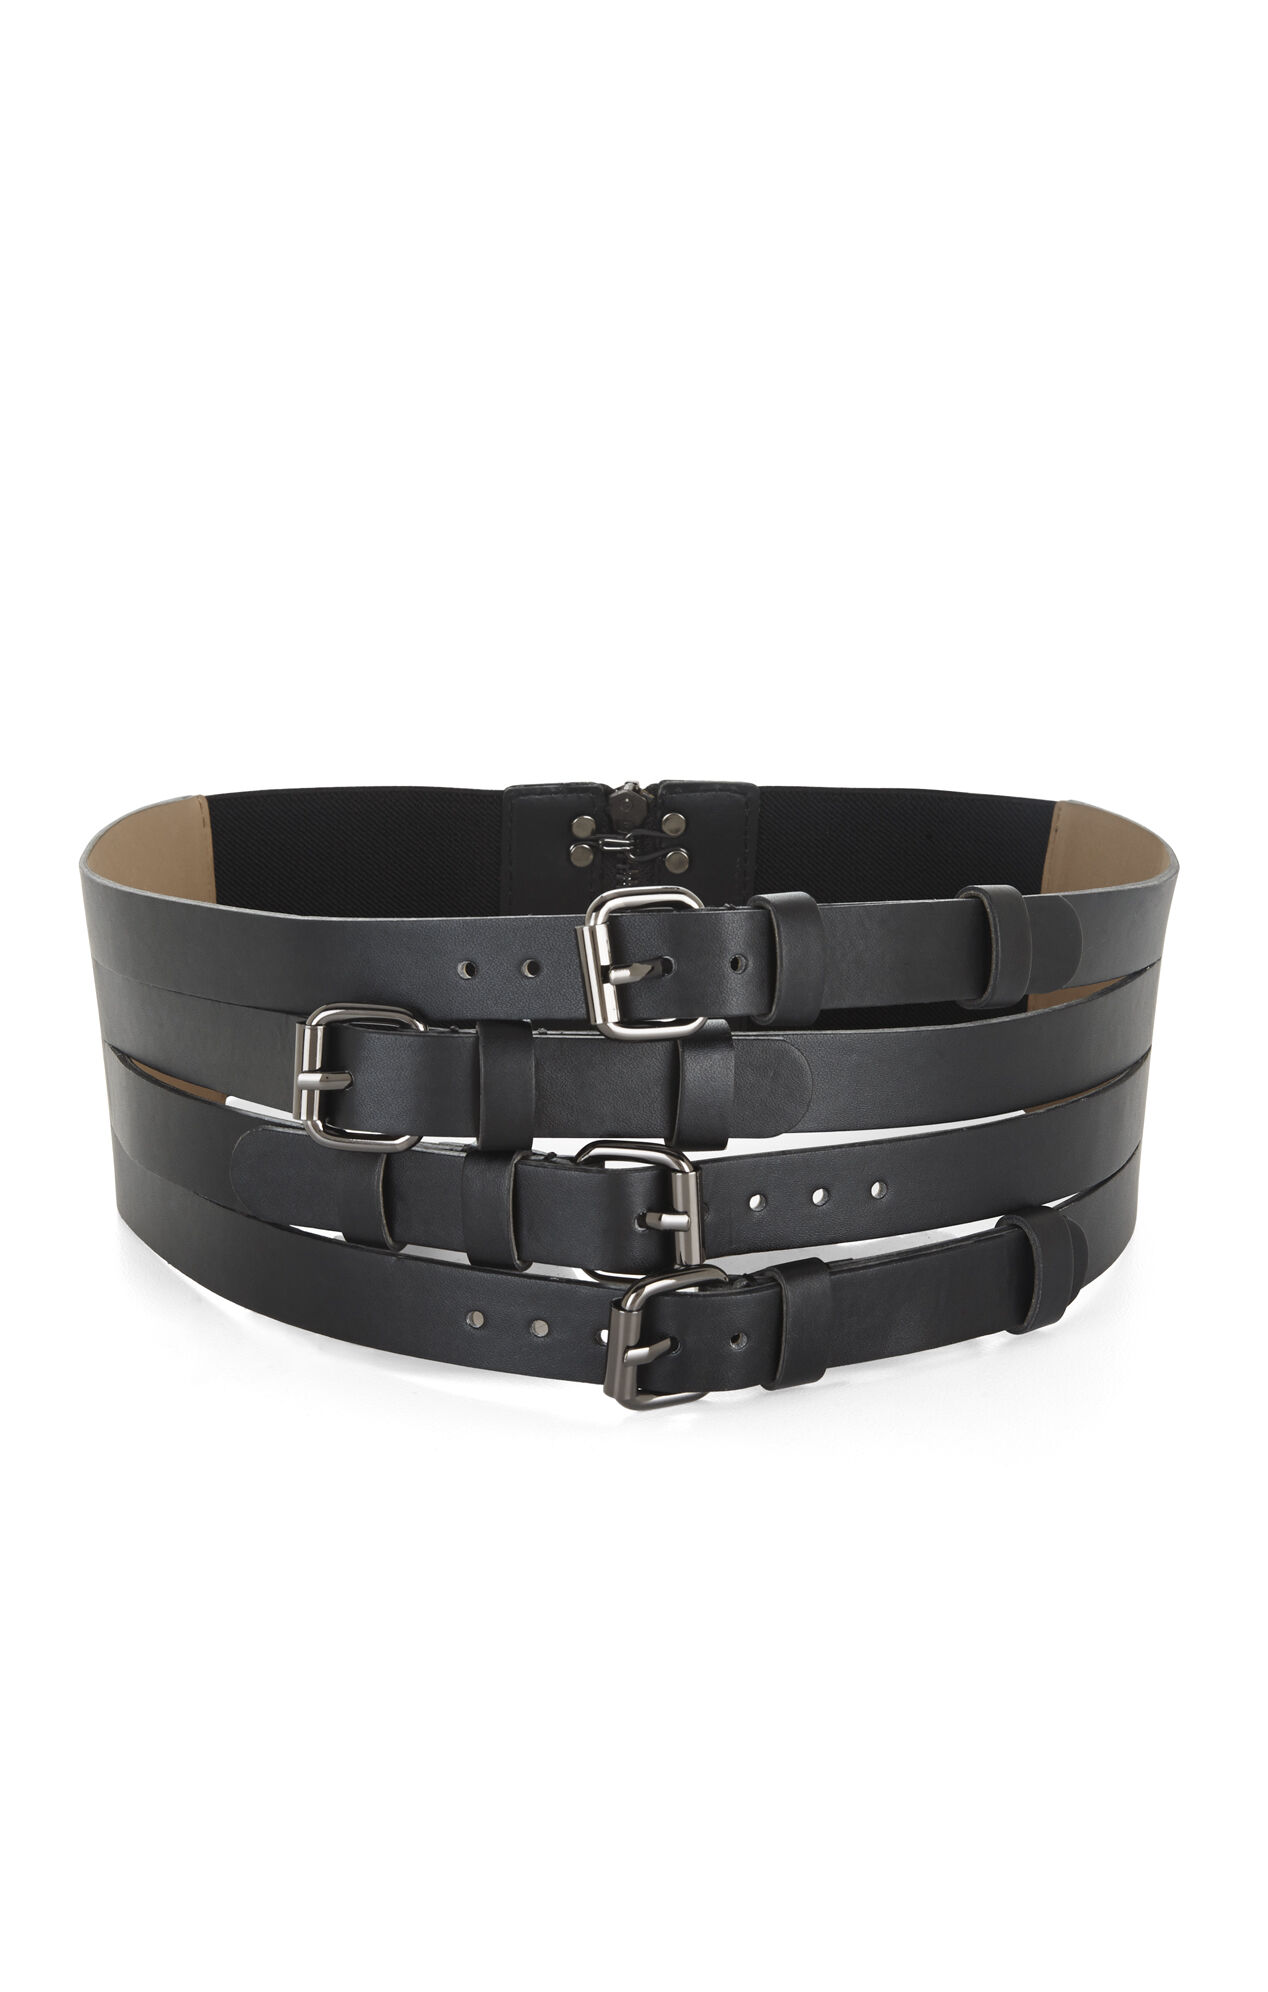 Multistrap-Buckle Waist Belt